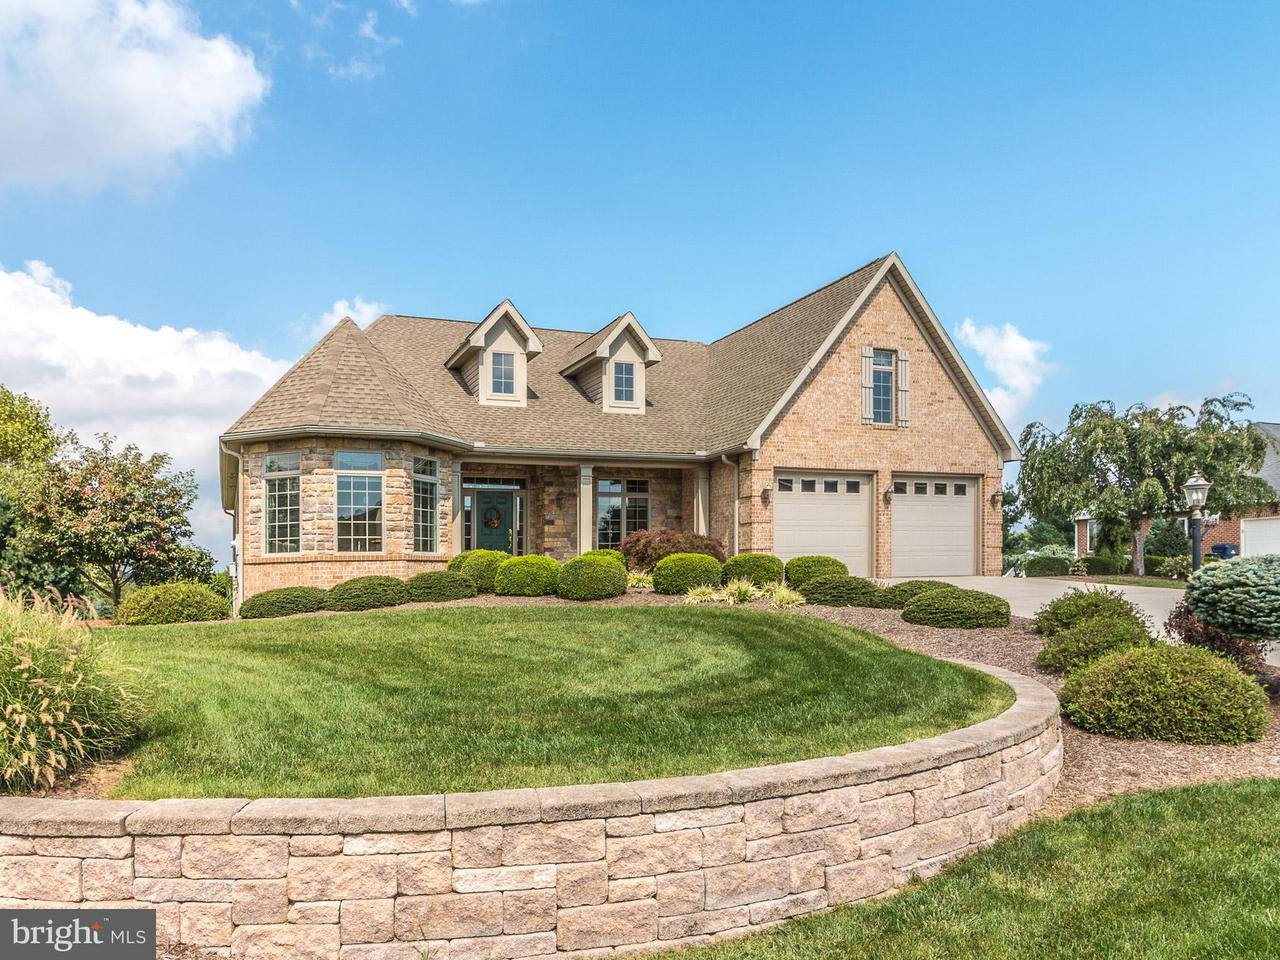 Single Family Home for Sale at 6337 Saucon Valley Drive 6337 Saucon Valley Drive Fayetteville, Pennsylvania 17222 United States